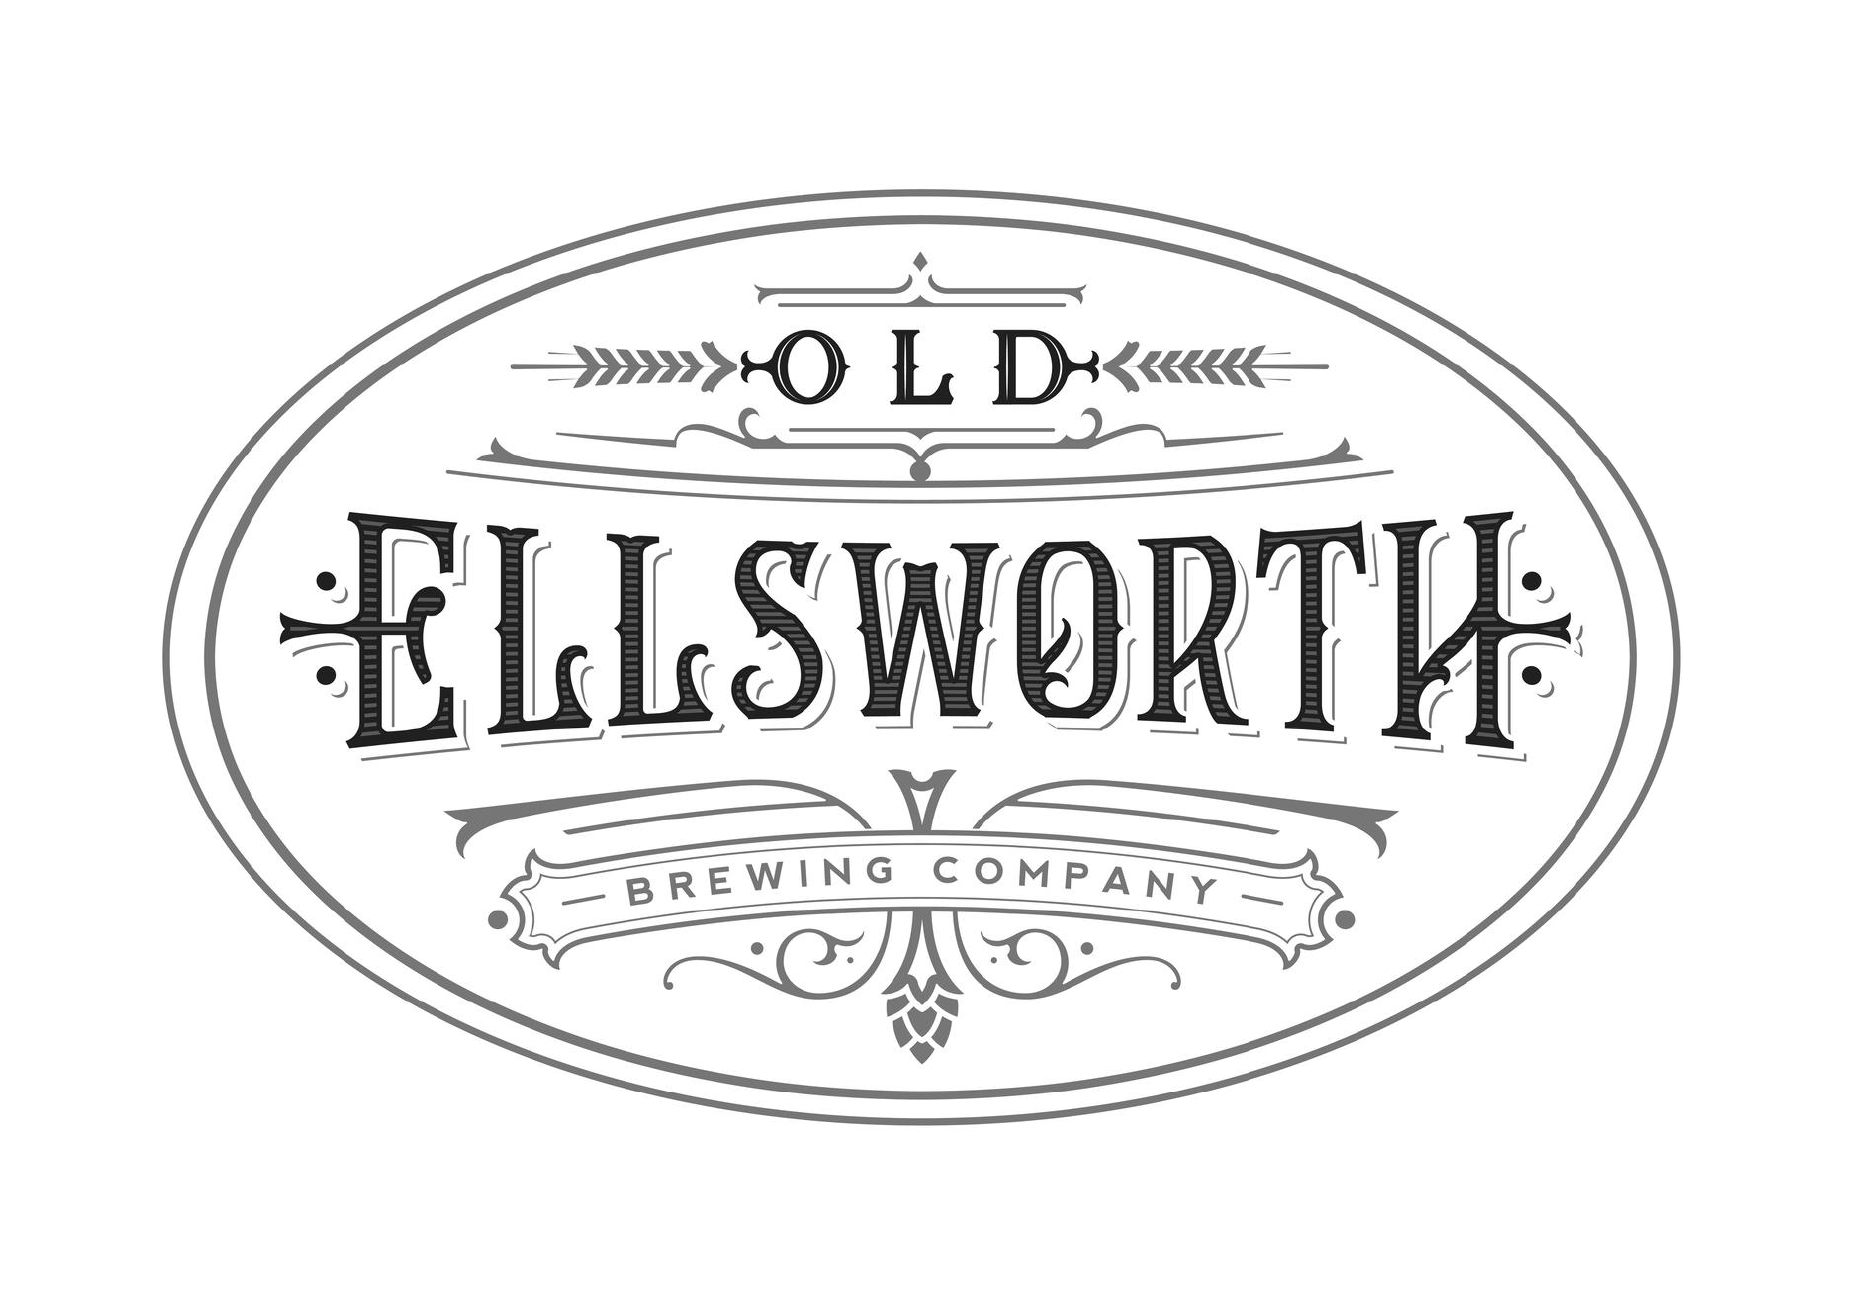 OLD ELLSWORTH